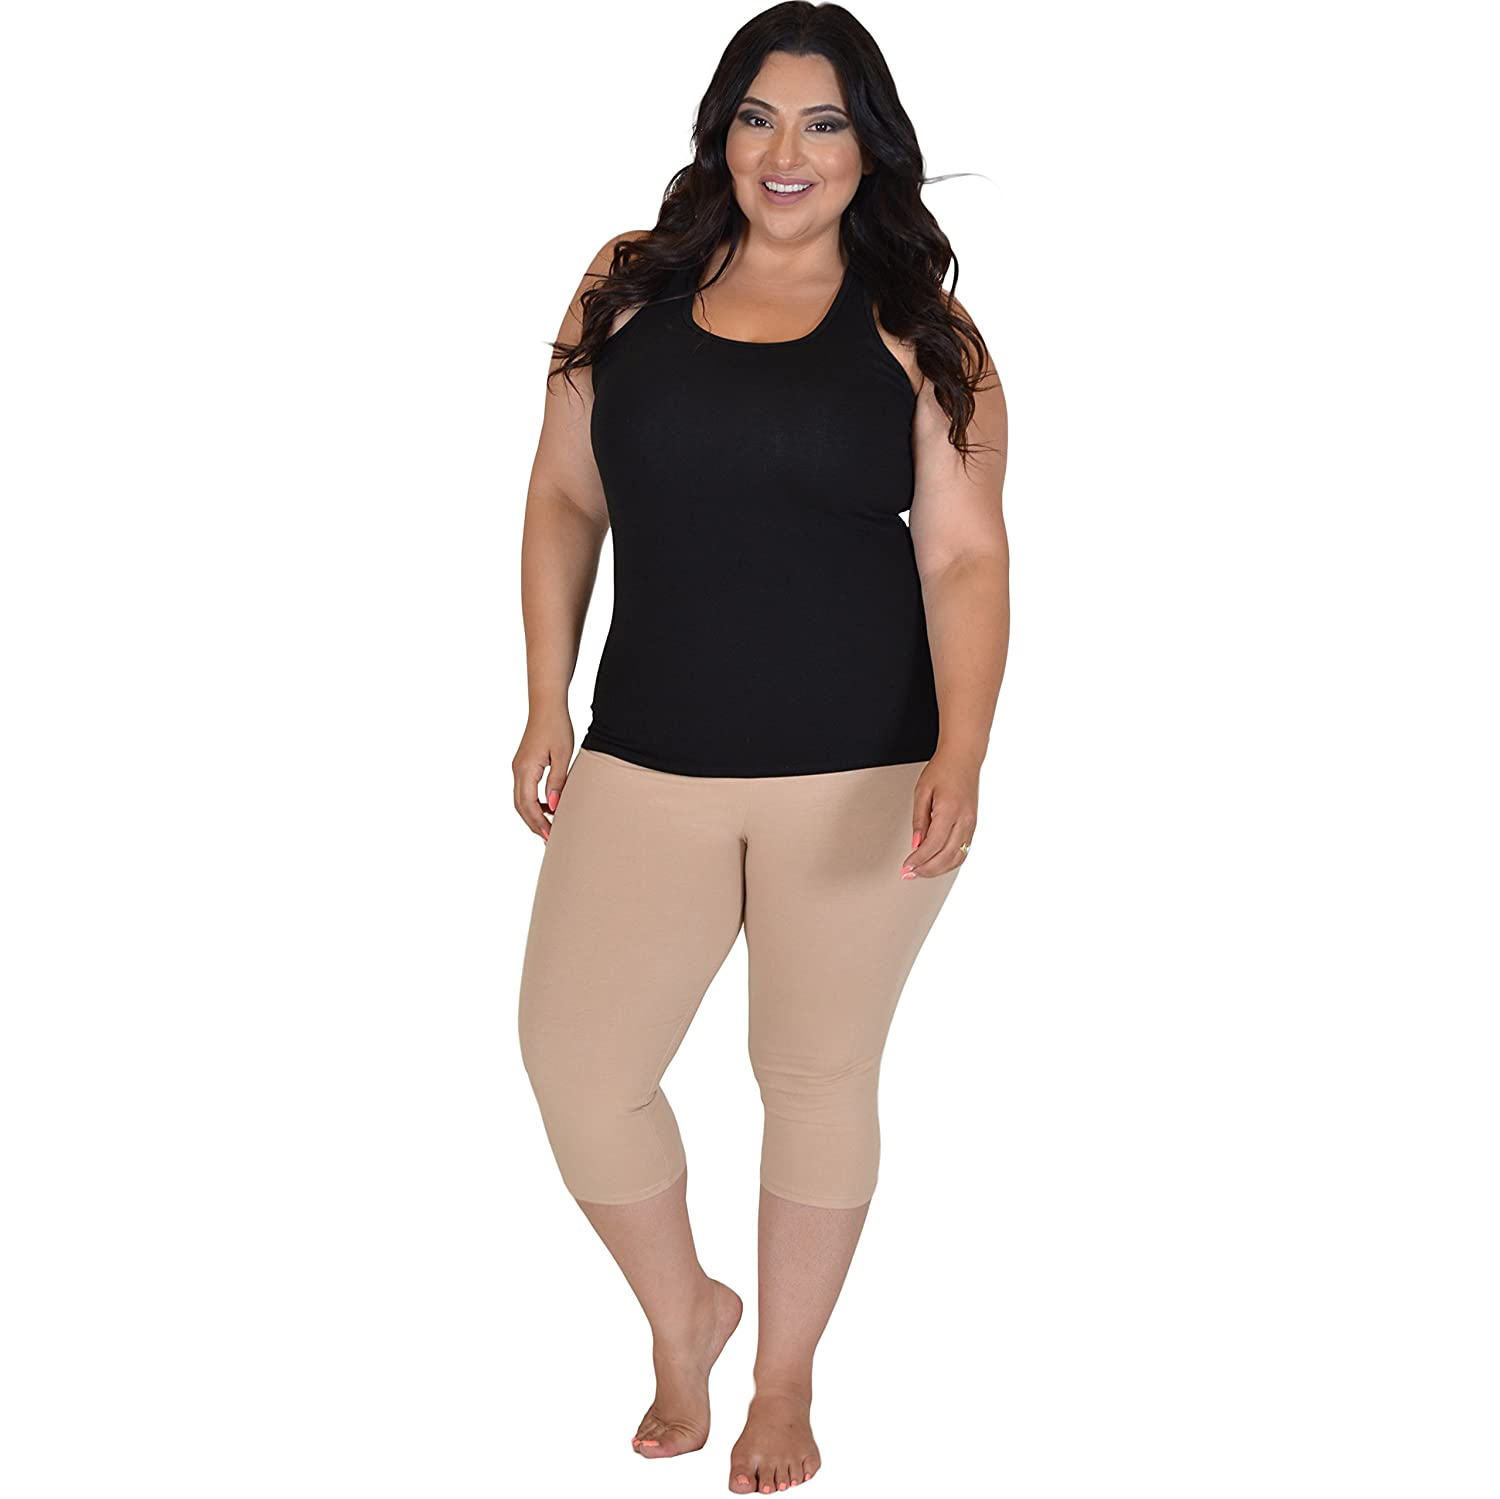 2aaed776ade Stretch is Comfort Women s Teamwear Plus Size Black Racerback Tank Top at Amazon  Women s Clothing store